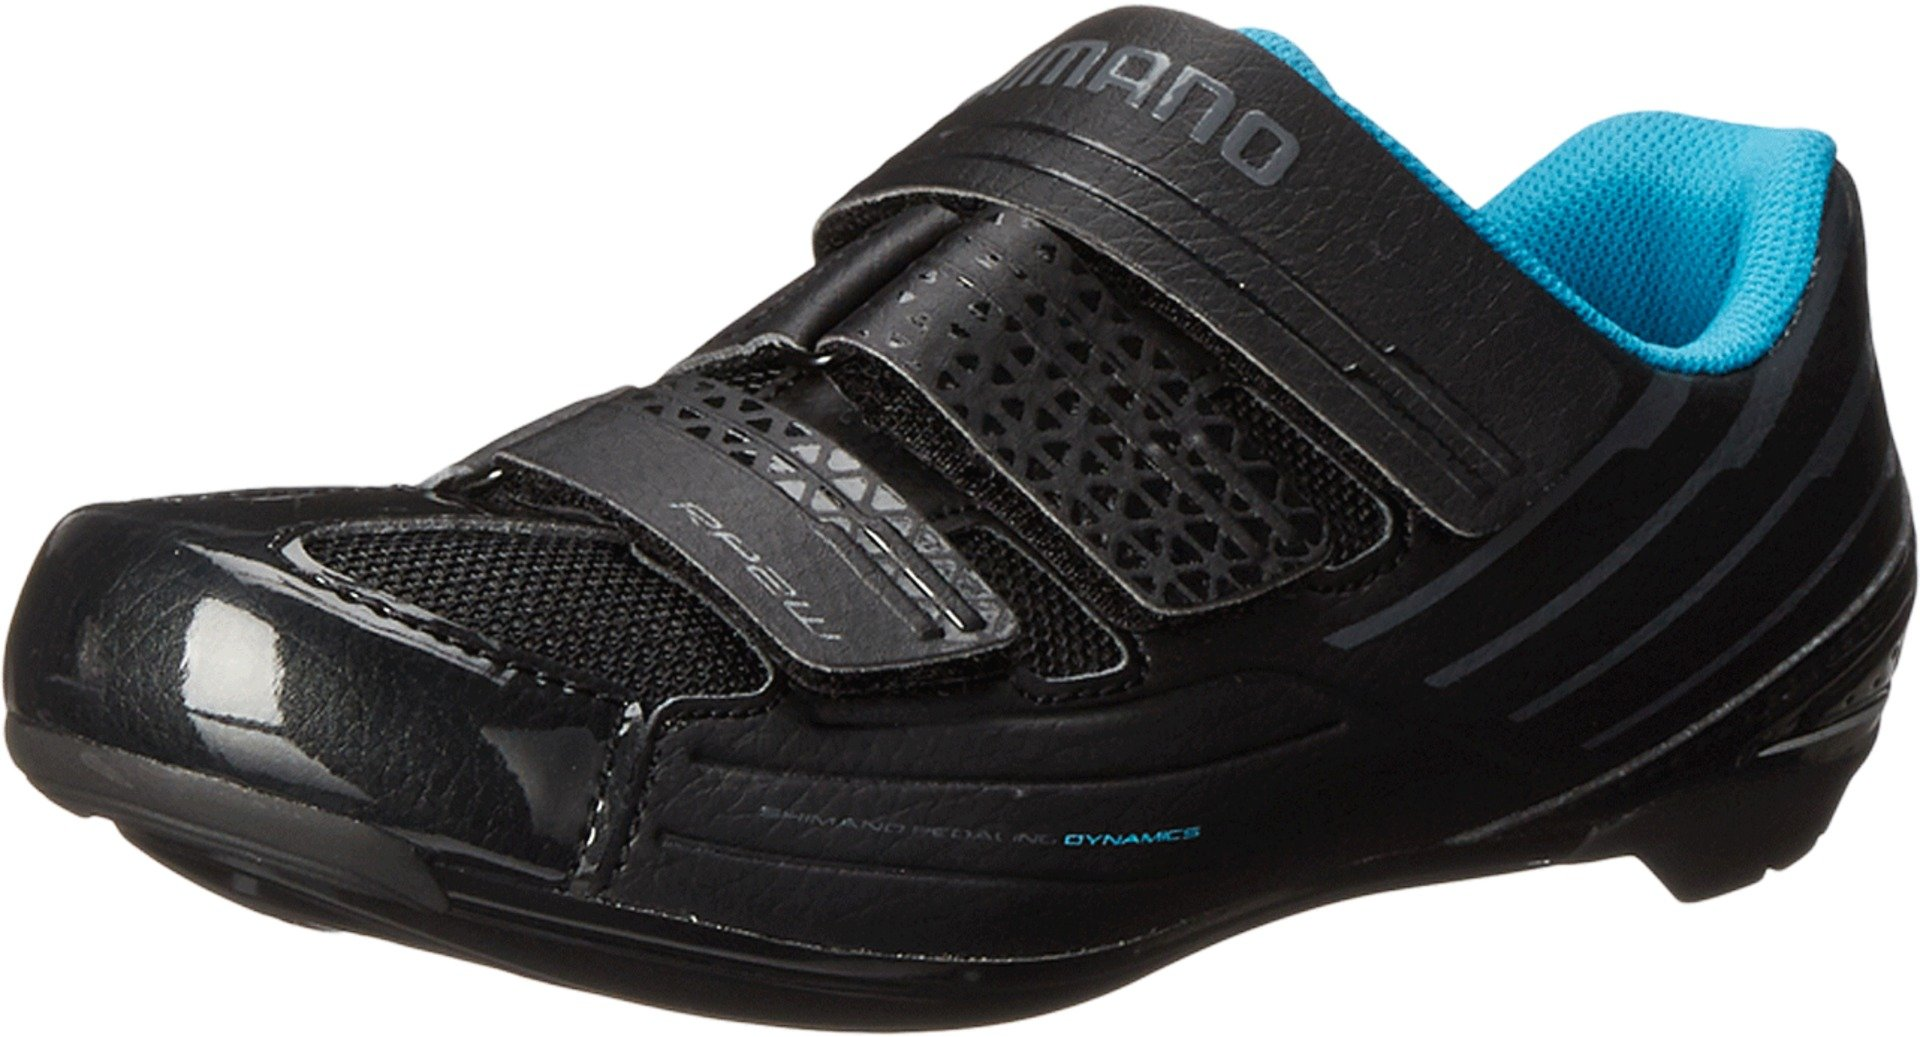 Shimano SH-RP2 Women's Touring Road Cycling Synthetic Leather Shoes, Black, 37 by SHIMANO